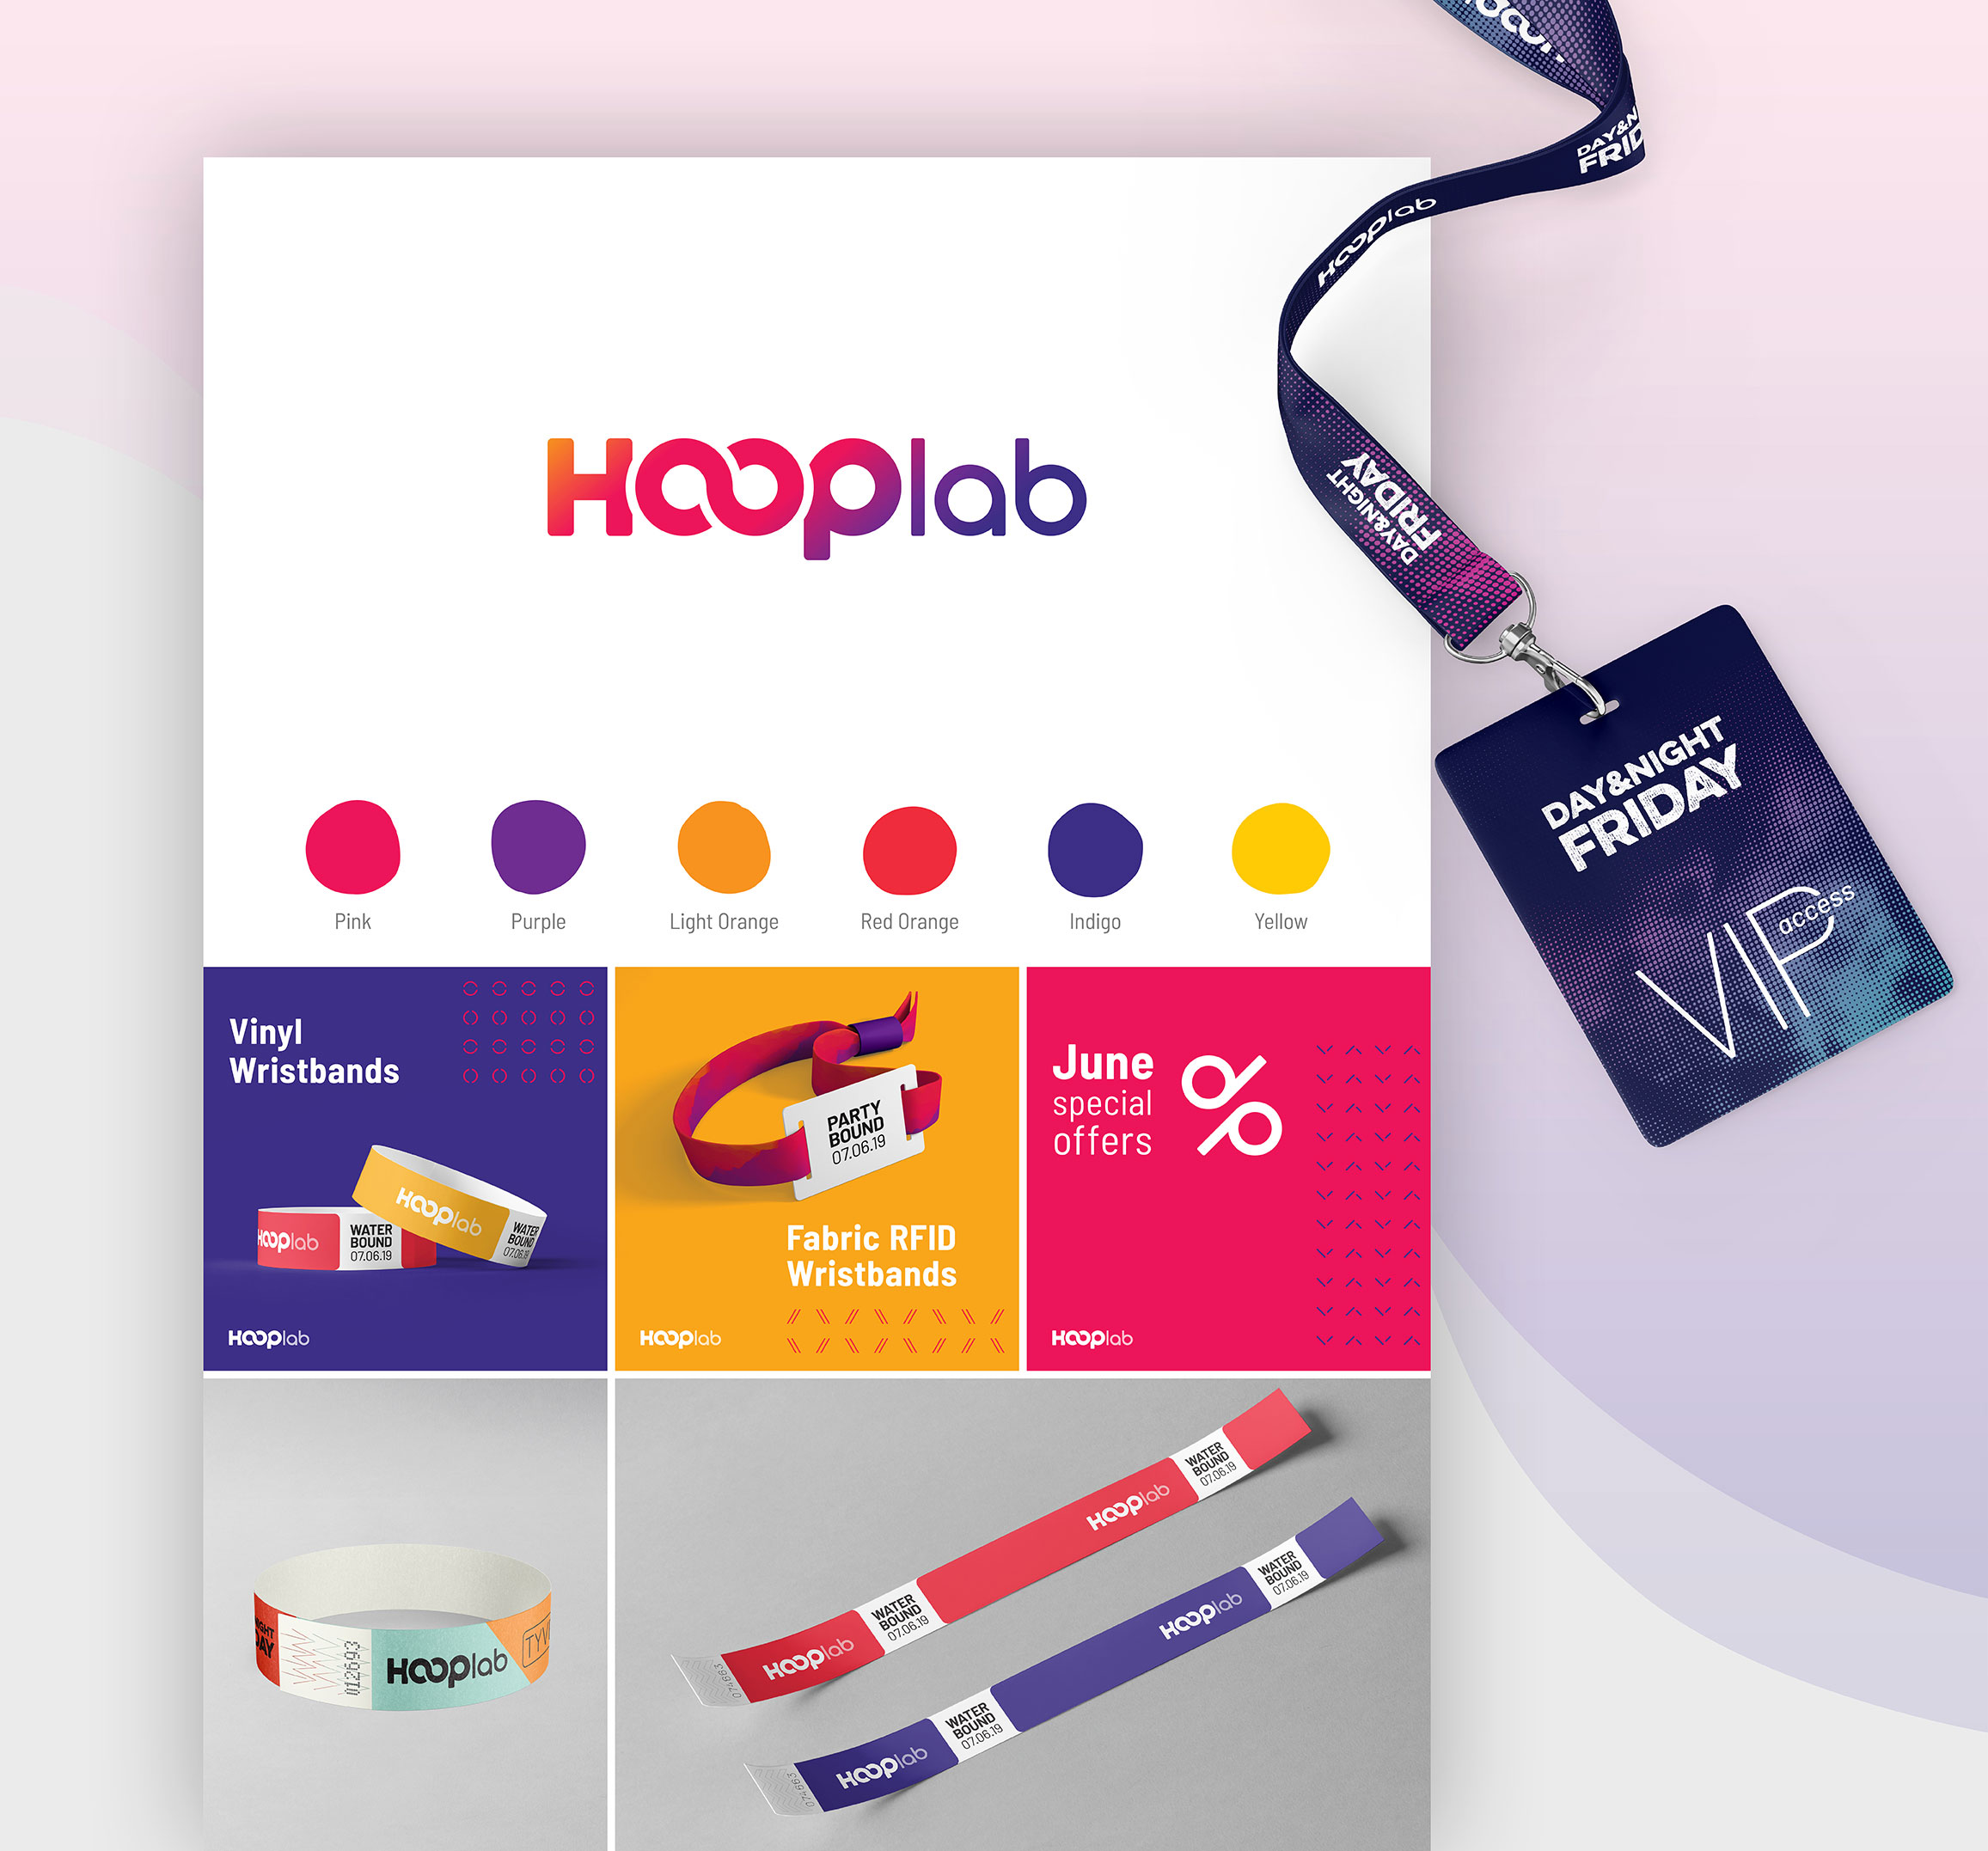 HoopLab Logo Design and Branding by Norr and Echo